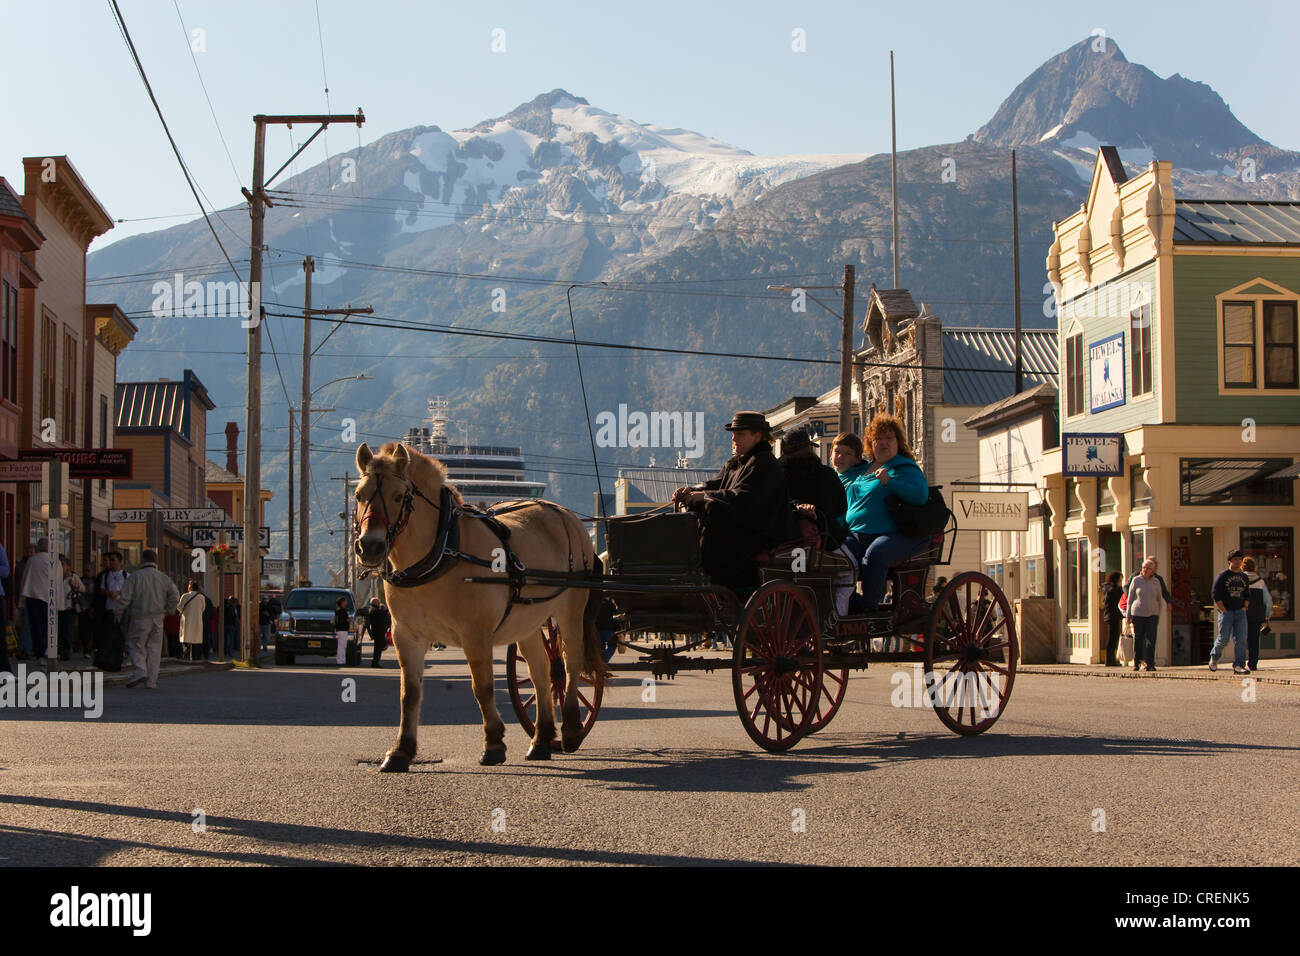 Horse-drawn carriage in historic Skagway, Broadway, Pacific ocean coast, White Pass, southeast Alaska, USA, Amerika - Stock Image